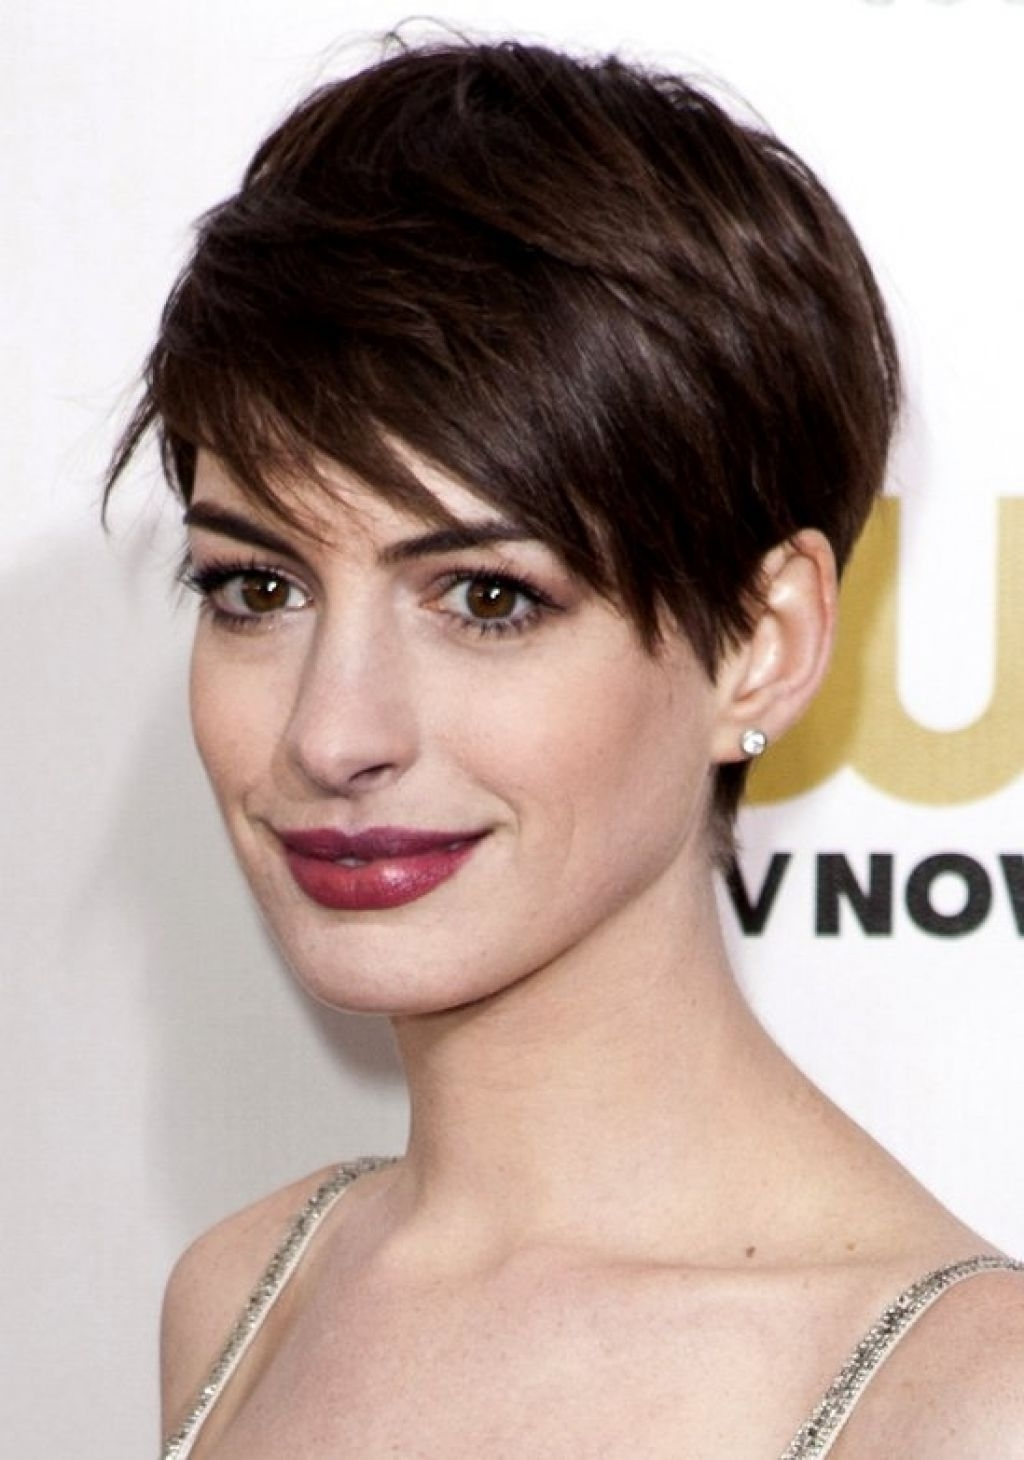 Pixie Hairstyles For Thin Fine Hair – Hairstyles Ideas Regarding Most Popular Pixie Hairstyles For Thin Hair (View 7 of 15)